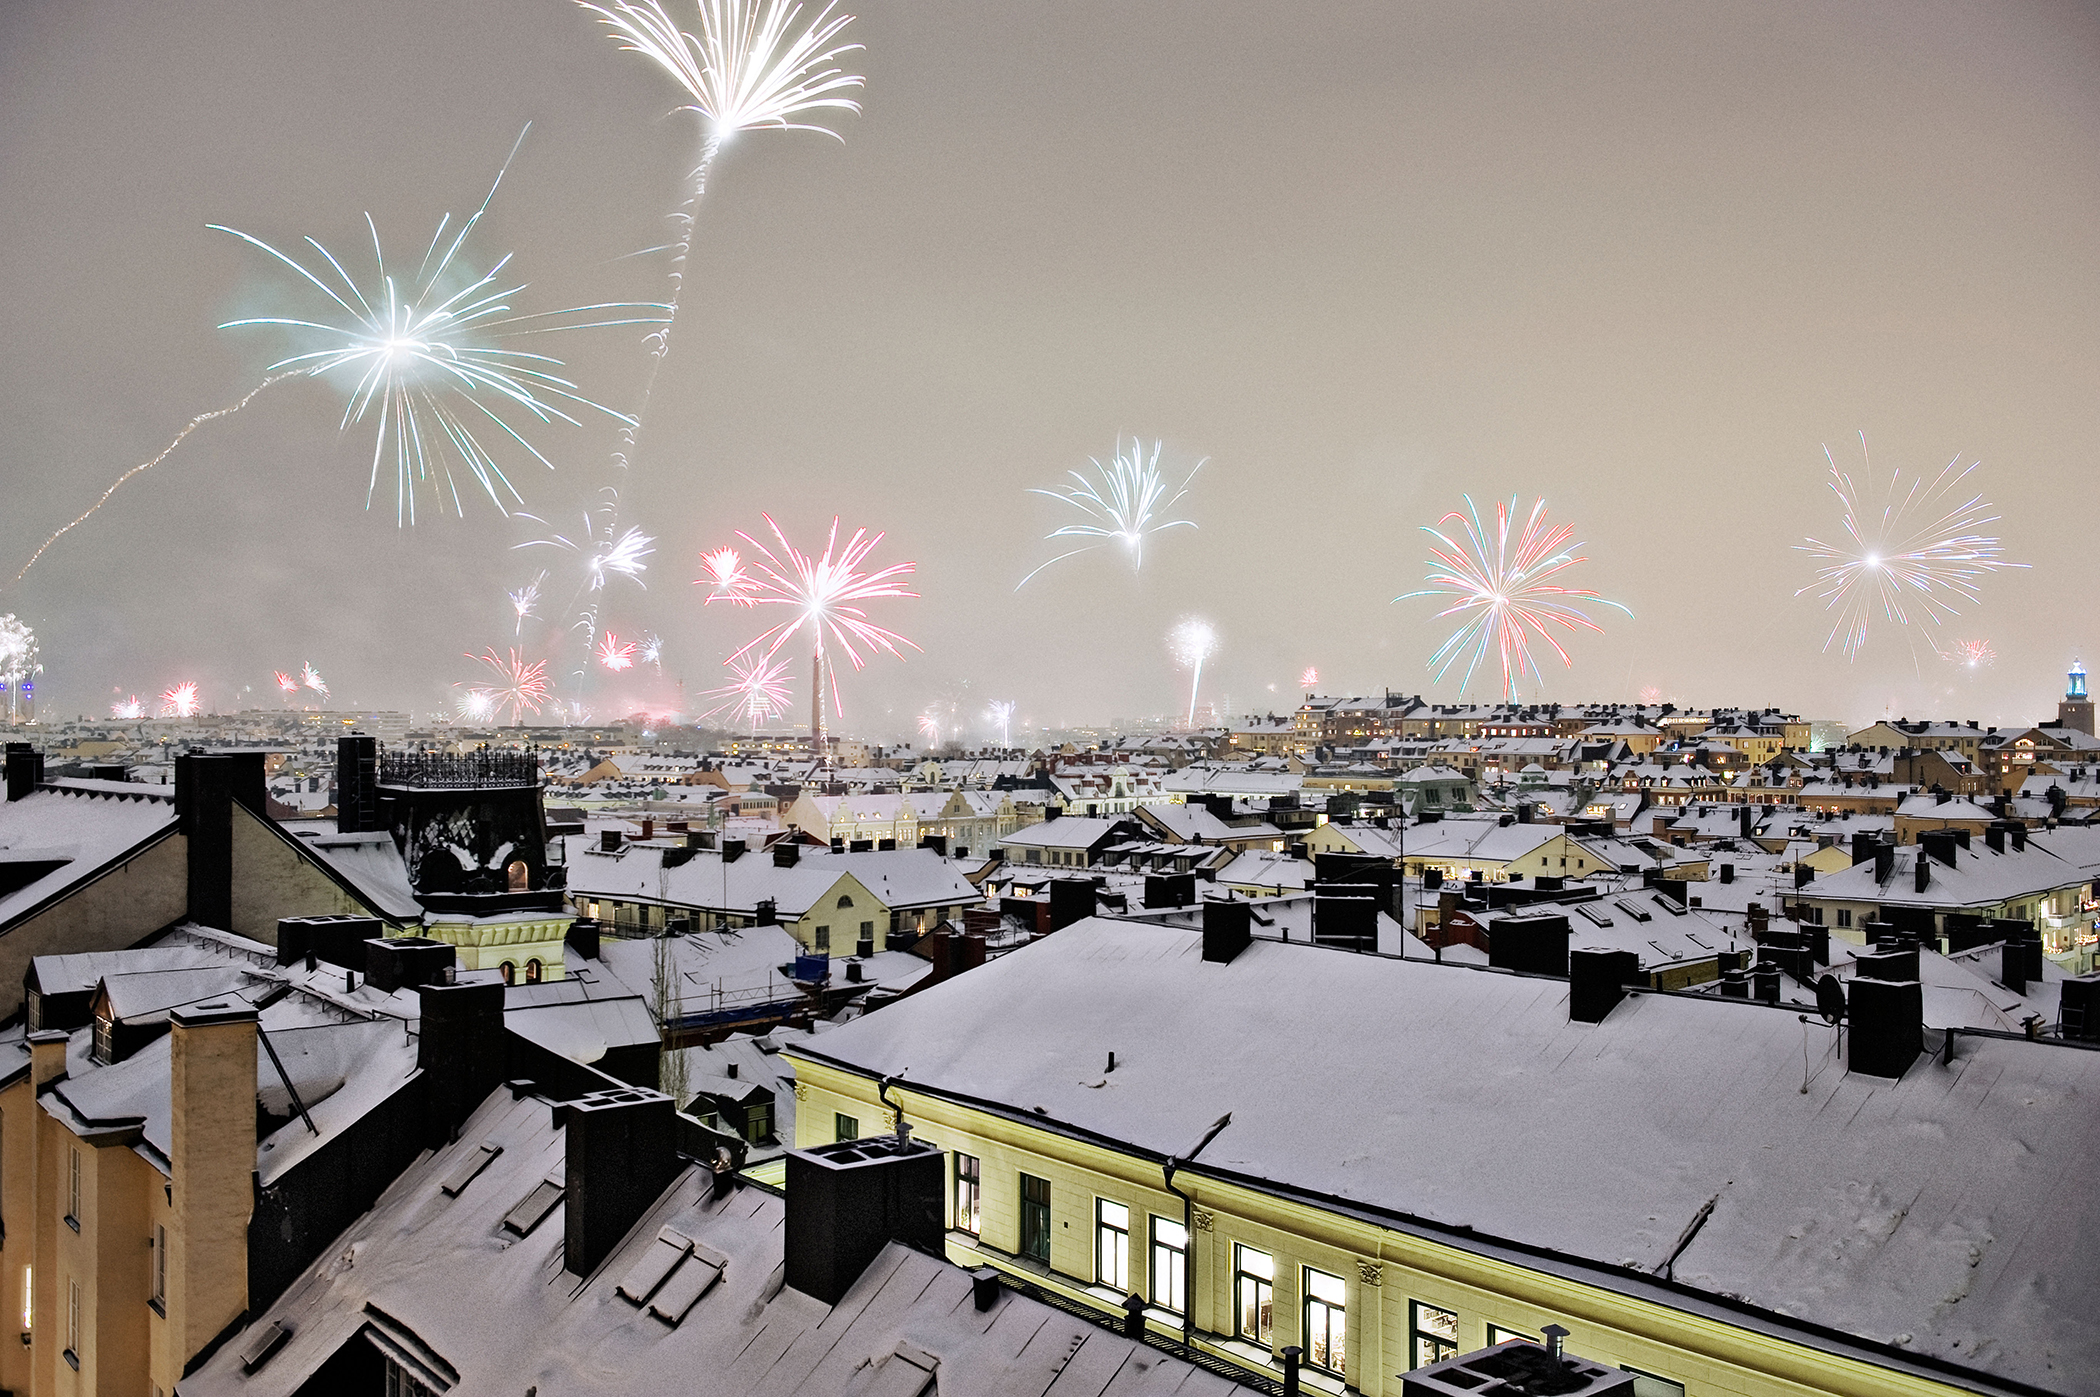 Stockholm on New Year's Eve